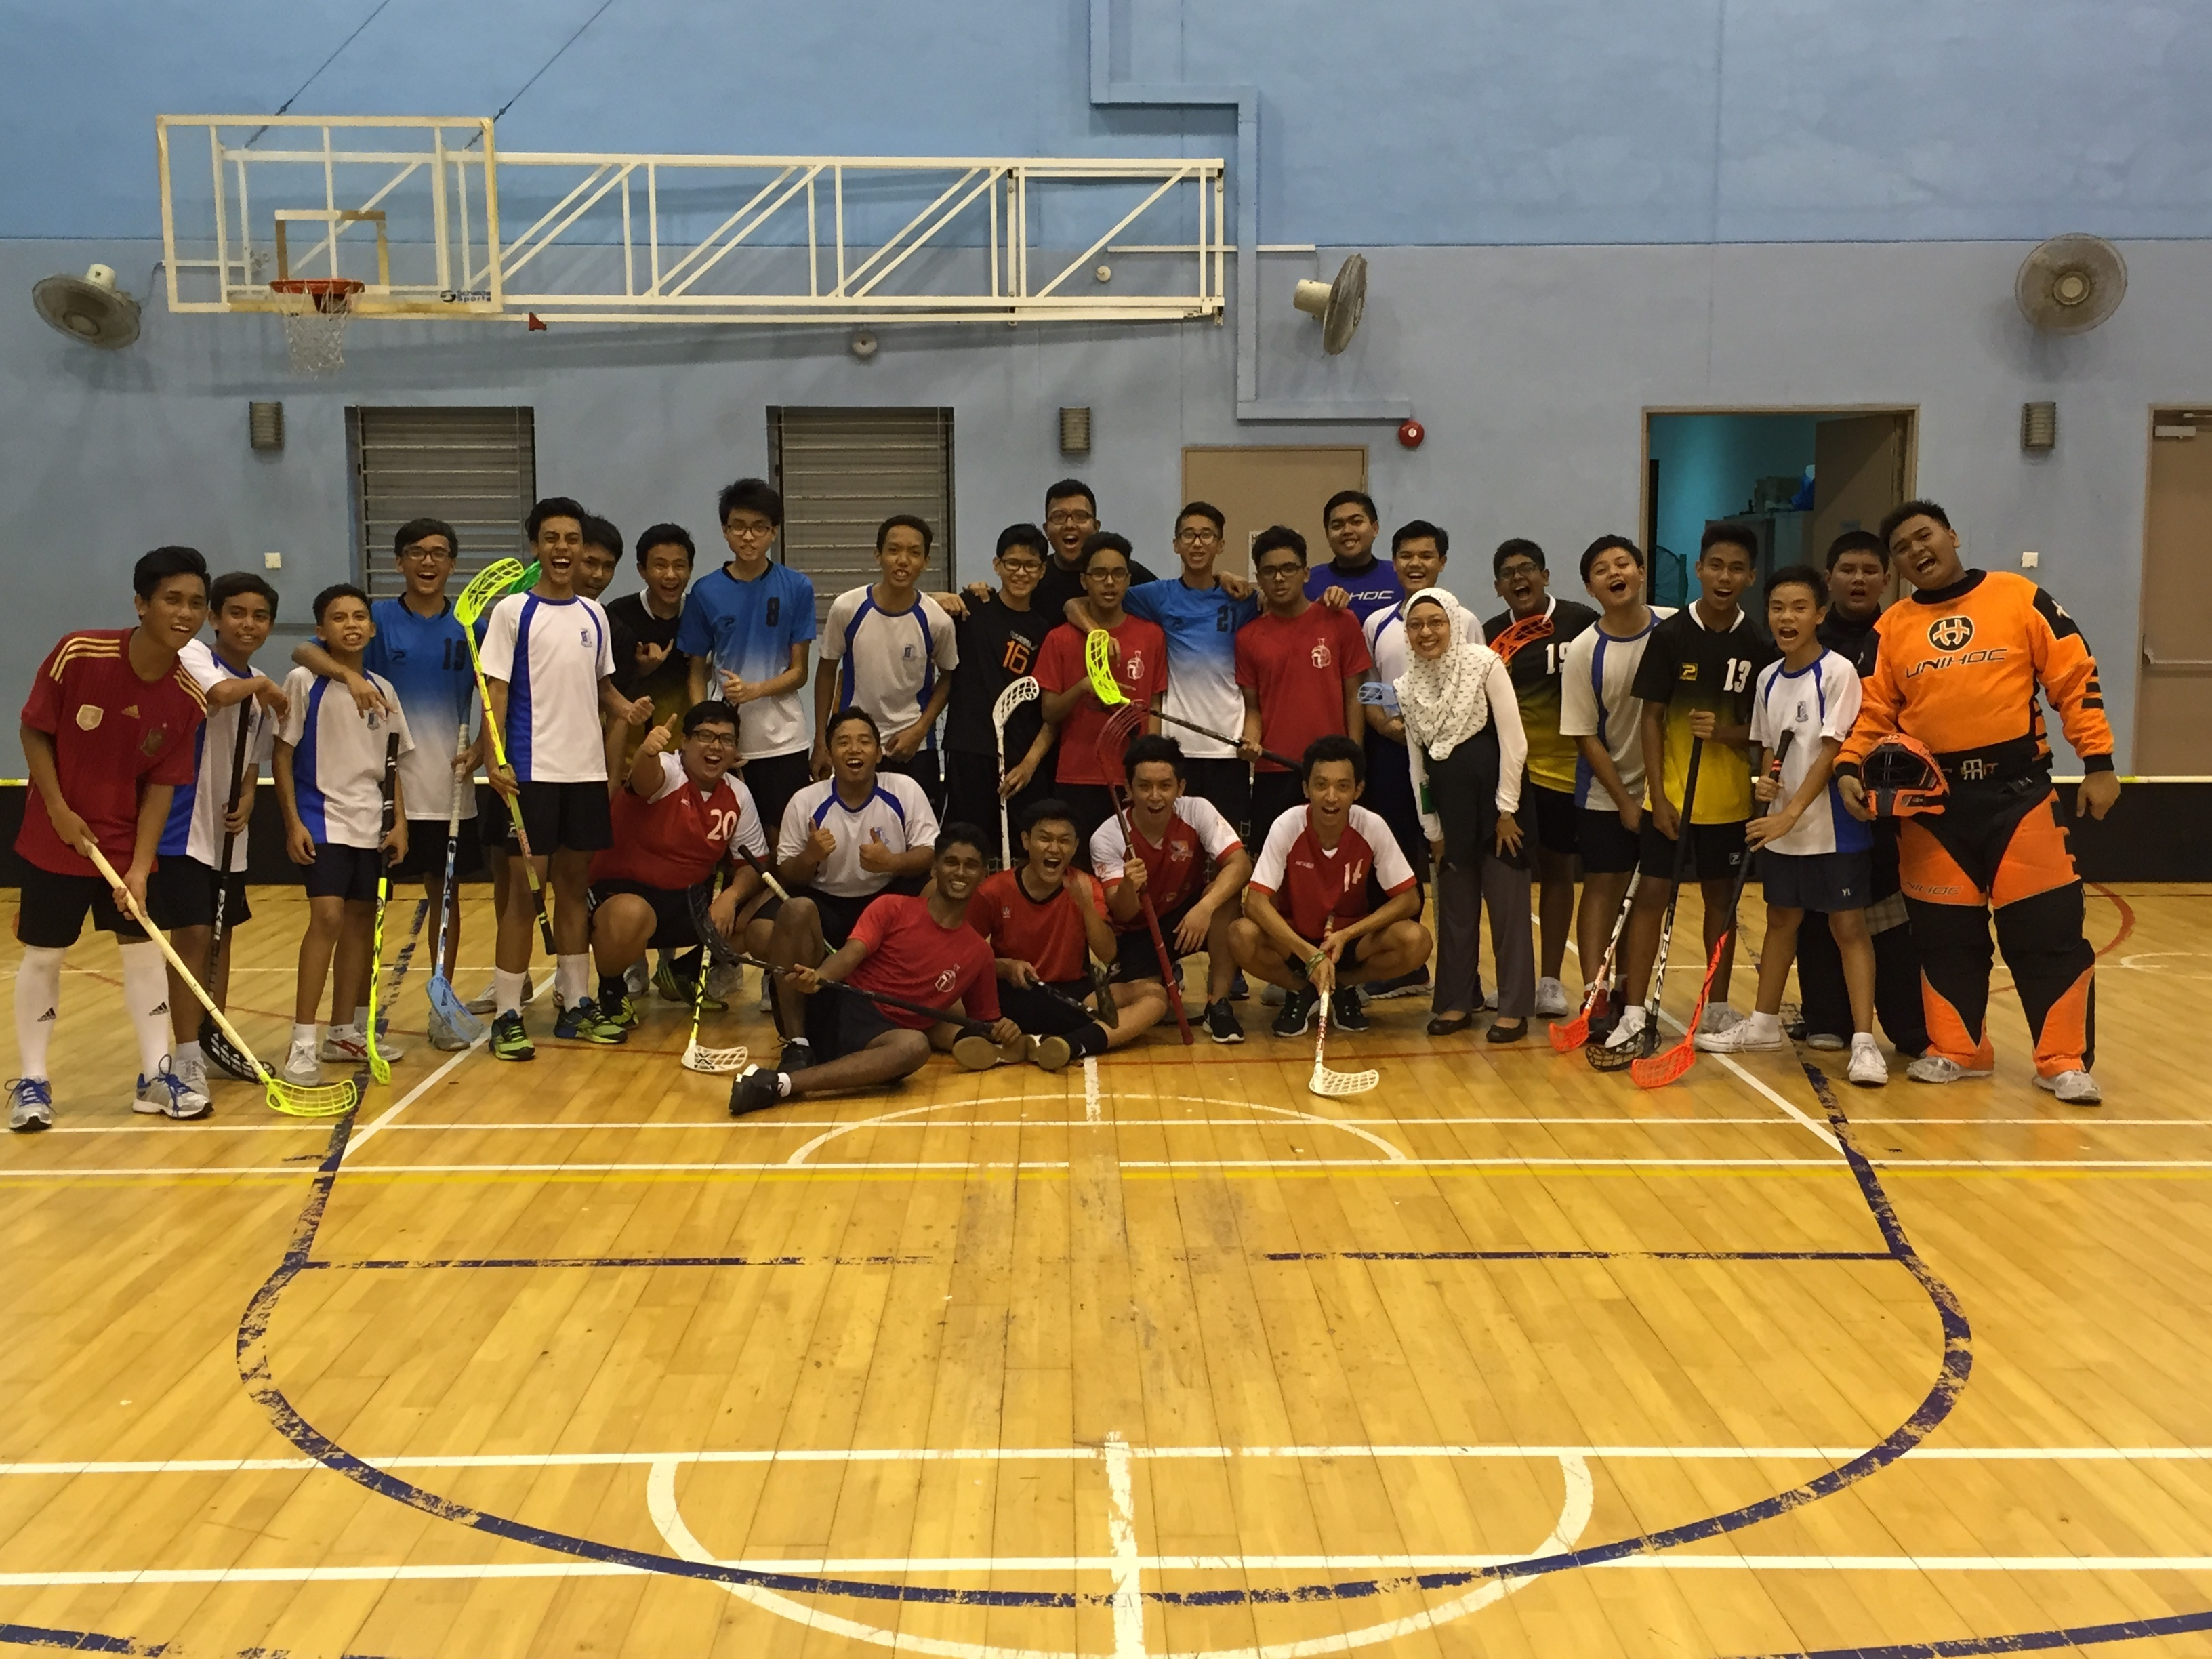 Floorball Team Group Photo 01